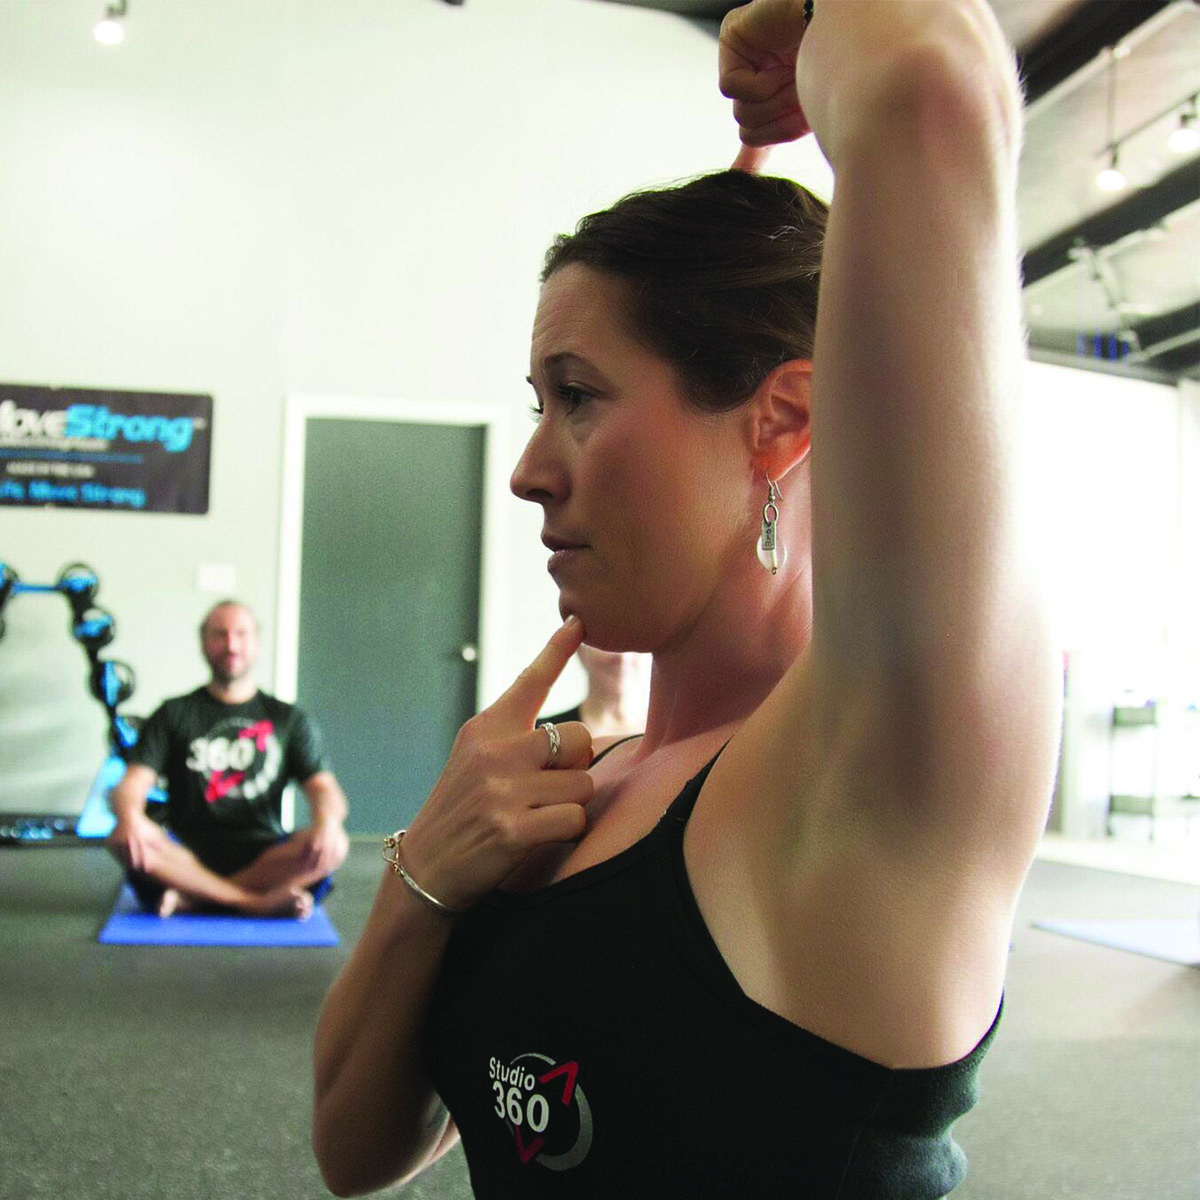 Stacey Stone - Stacey is a holistic health and fitness coach with over 15 years of experience in the fitness industry. With a background that began in traditional personal training and a focus not he importance of alignment with in the structure of the body, she now focuses on helping clients restore pain-free movement with alignment based exercise. She believes that a mindful integration of movement into everyday life is the backbone to balanced health and well being. Stacey has completed extensive education in her field including a BA in Psychology, CHEK level 1 Practioner, CHEK Holistic Lifestyle coach, NASM Personal Trainer, National Personal Training Institute Certification, ELDOA Practitioner, Certified Hatha Yoga Instructor, SUP Yoga Instructor, Reiki Practioner and is currently working on her massage therapy certification.